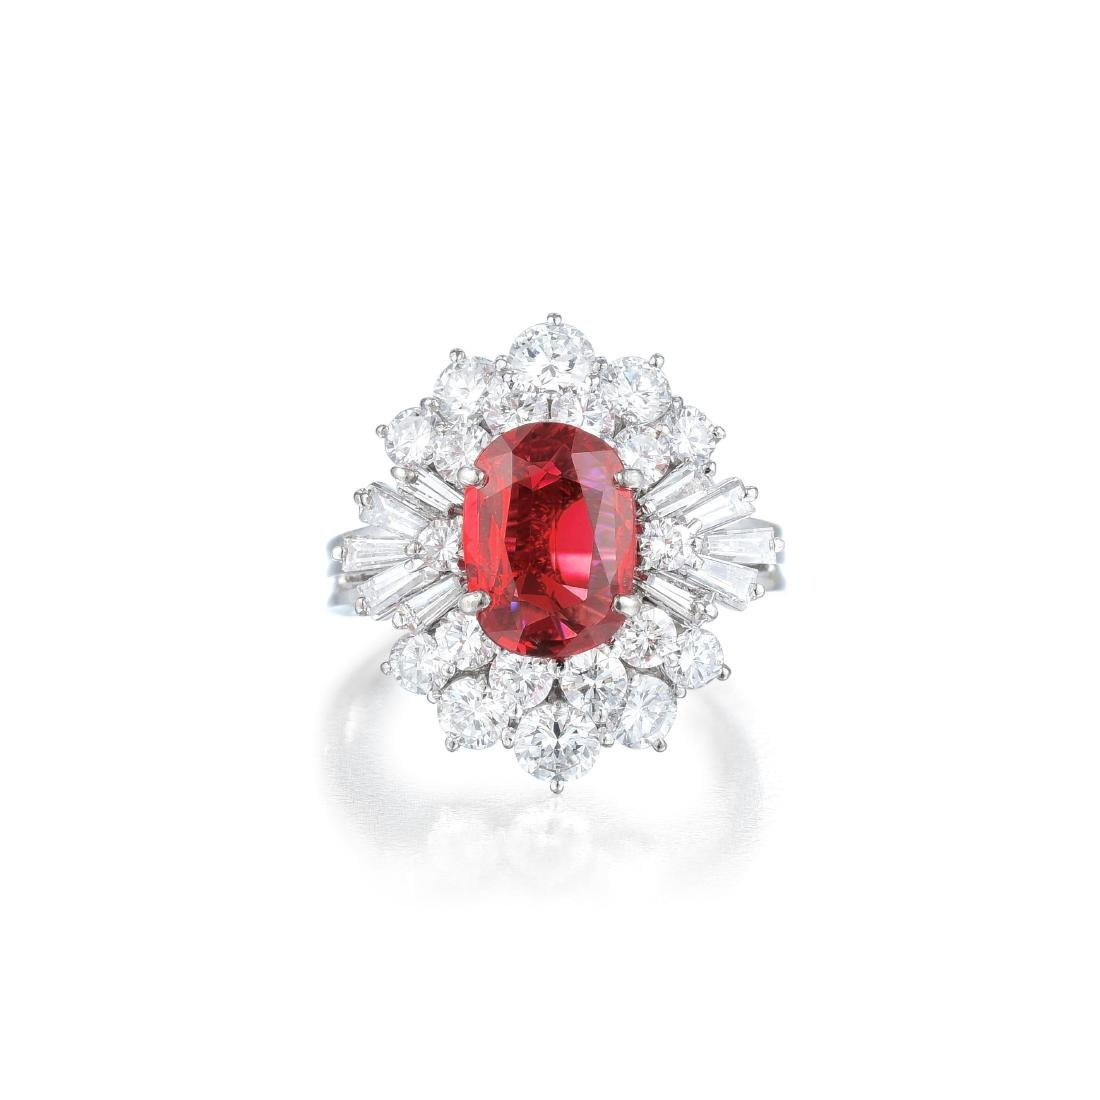 An Unheated Ruby and Diamond Ring